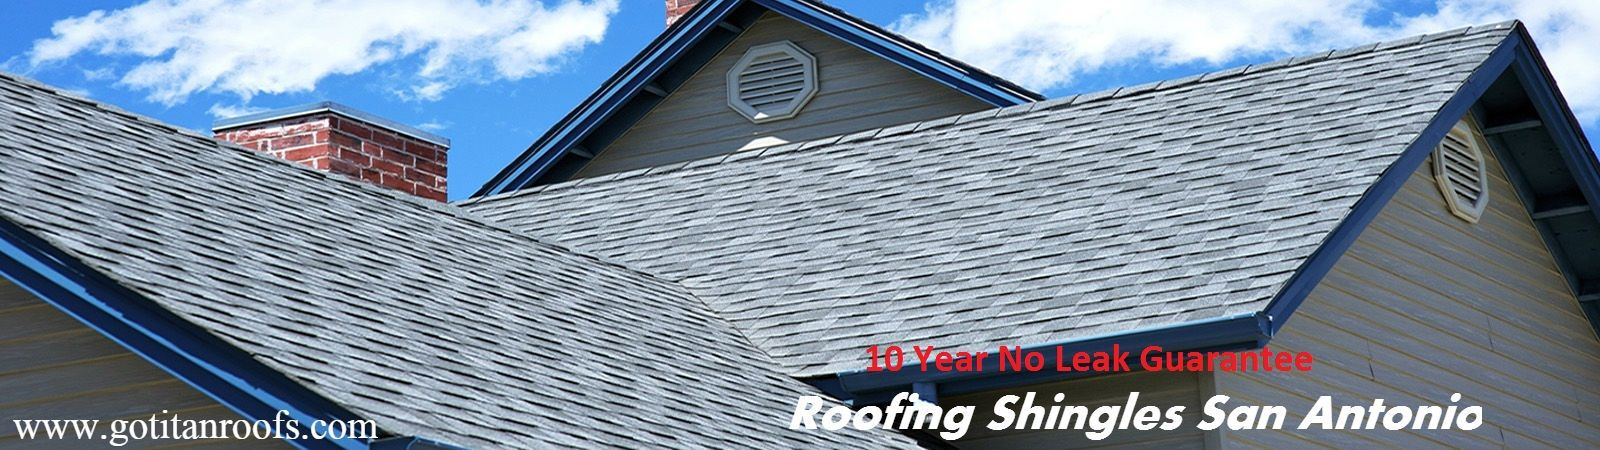 Get The Best Roof Shingles And Repairing Services In San Antonio Tx Gotitan Roofs Offers Best And Affordable Services W Roof Repair Best Roof Shingles Roofing